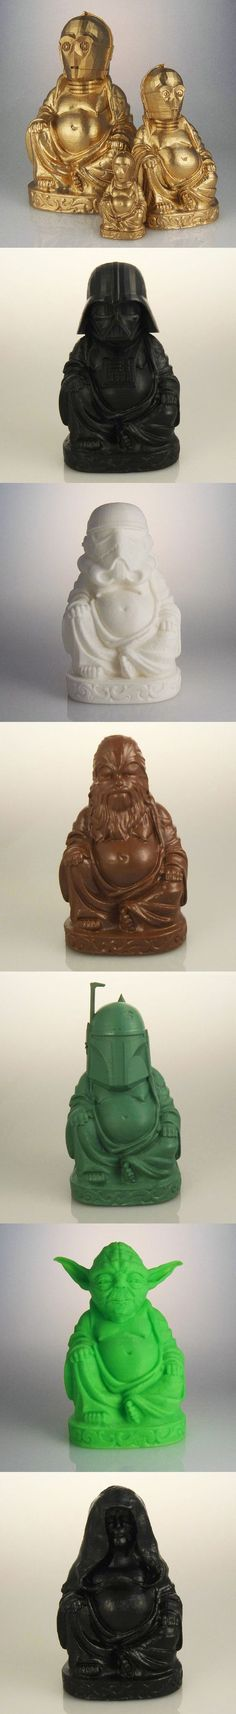 """3D Printed Geeky Laughing Buddhas: What is the Sound of One Han Shooting? Tap into the force of Luck with Chris """"muckychris"""" Milnes' 3D printed geeky Budai statues, which swaps the jelly bellied deity's head with characters from Star Wars: #3dprintingideas"""